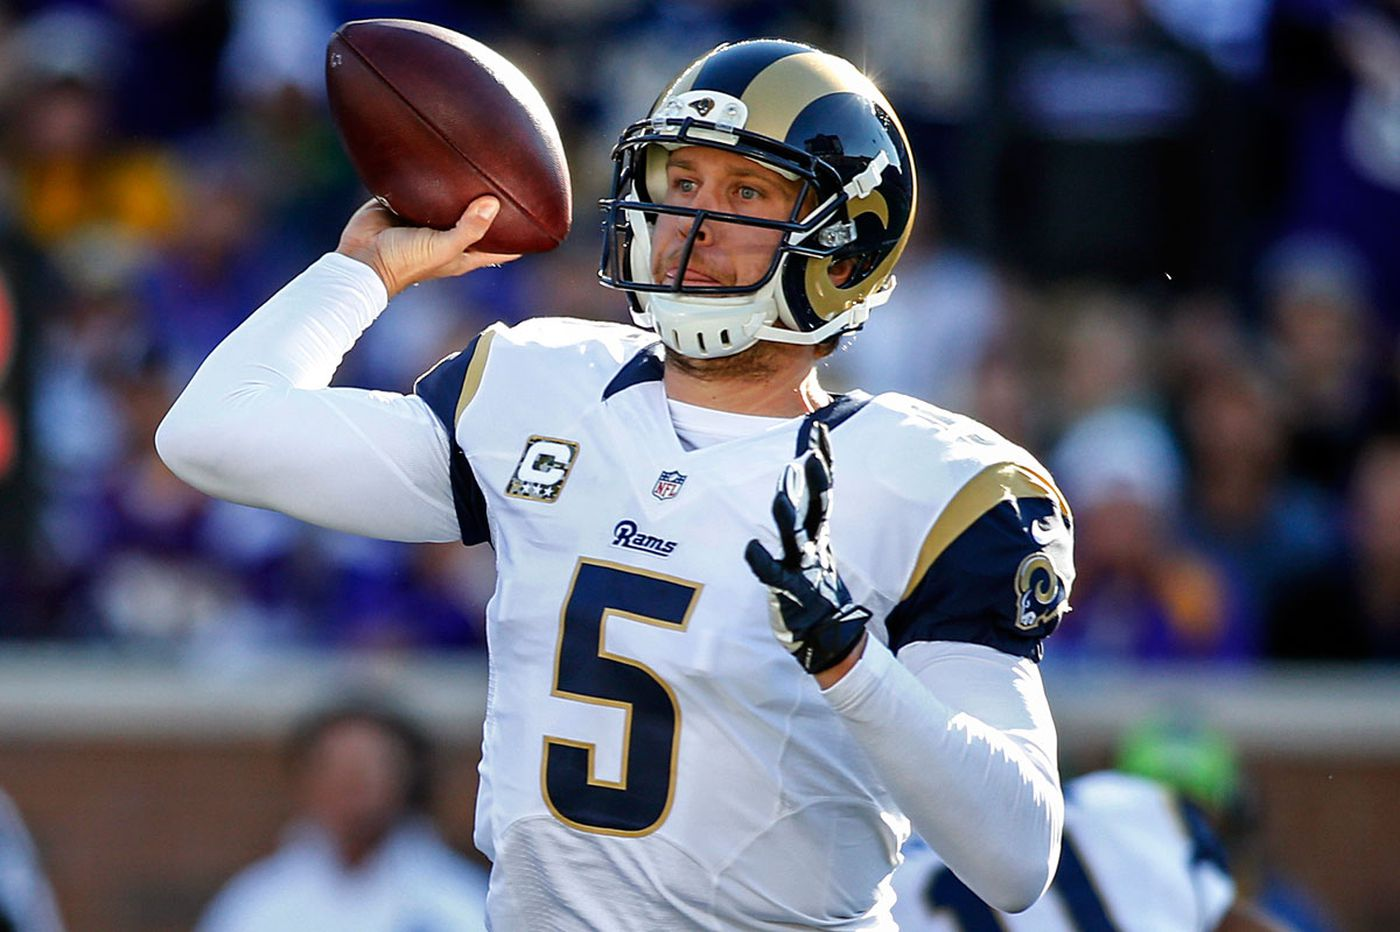 Nick Foles' one season with the Rams was anything but super